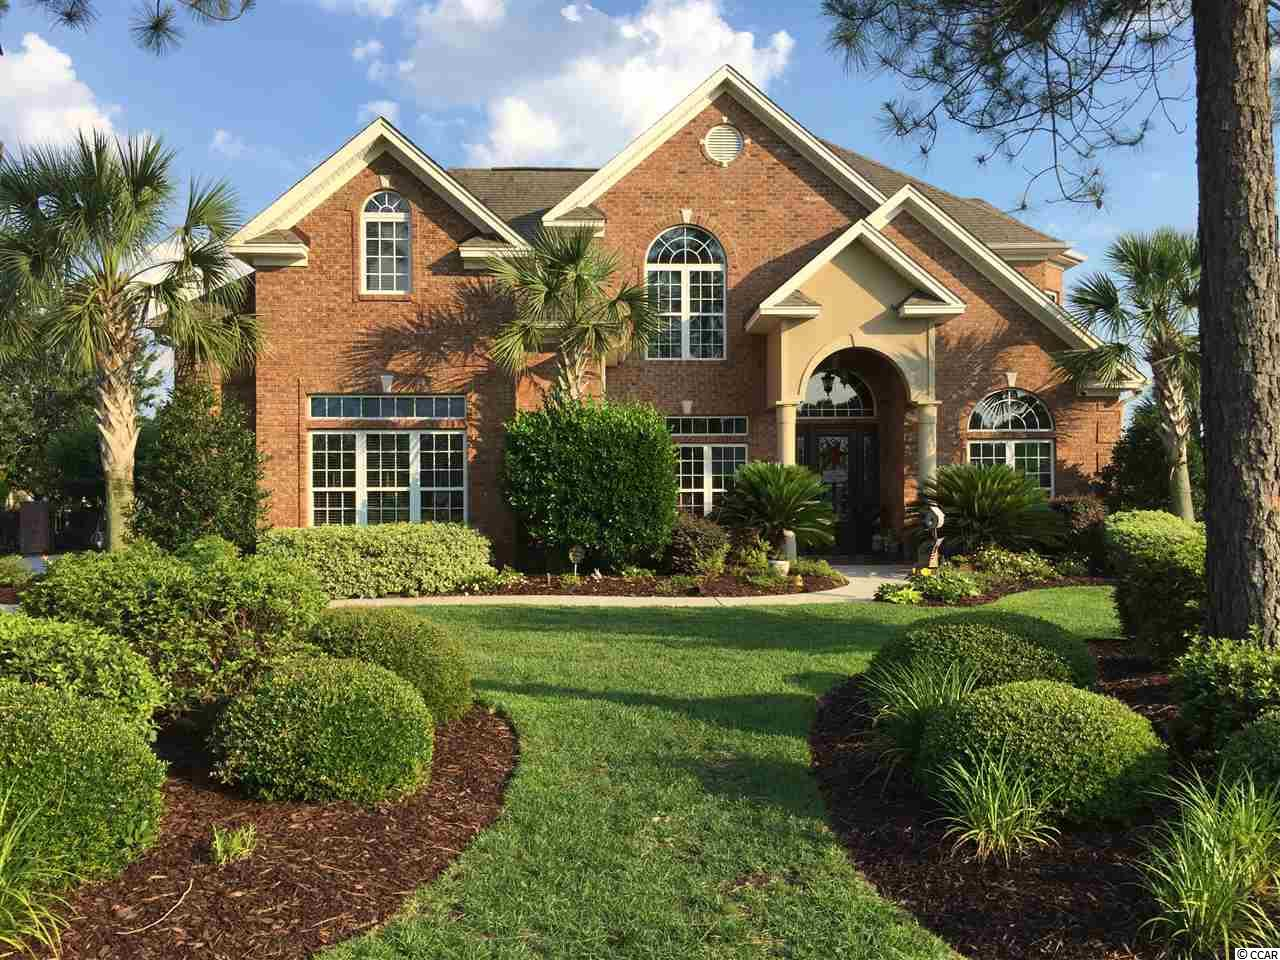 Enjoy lake front living at its best in this beautiful, executive home located in Myrtle Beach's premier neighborhood of Plantation Lakes. This well designed, open concept home sits on a one acre lake front lot. With 5 bedrooms, 3 1/2 baths, two story great room, formal living & dining room, office & media room offers many options for your family to be together or to enjoy some privacy.  As  you pull up to the house you will first notice the elegant curb appeal of the traditional all brick home with an oversized 3 car garage, large paver driveway and walkway to the front door.  Upon entering the home into the 2 story foyer, you will immediately take note of the attention to detail in the extensive crown molding,  8 inch base boards, intricate rod-iron staircase and the glowing hard wood floors. To your left is an office/library well positioned for privacy, formal living and dining room on your right which leads through to the Chef's Kitchen, with maple, hand-crafted custom cabinetry, granite counter top and GE Profile stainless appliances, large sit up counter/bar and eat in breakfast nook, all open to the large 2-story family room which is enhanced by beautiful built in entertainment center and fire place.  Also on the main level is a large laundry room also with custom cabinetry and located adjacent to the master wing which is maintained at perfect temperature with its own heating and cooling system. The master bedroom features a sitting area and french doors leading to an elegant master bath with tiled shower, whirl pool tub and separate his and her vanities. As you head up the stairs to the 2nd floor you will find an open lofted hall way over looking the 2 story family room. On the right are large guest bedrooms separated by a full Jack and Jill bath featuring a private water closet. On the left is  two more large bedrooms, also separated by a full Jack & Jill bath. One of these rooms is currently being used as an entertainment room with a pool table. Through this room is a media room wired with 7.1 surround sound. Sit down and relax. No need to go out to the movie theatre when you will become completely immersed in the sight and sound of your movie of choice in your own home theatre. Through the house to the screened-in back patio, with ceiling fan, you will be awed by the sight of the Walt Disney World Resort inspired backyard retreat. The flow of water from the hot tub to the pool, as well as the waterfall and fountains, make this area an incredible oasis. A cool, calm breeze winds through various seating areas, one of which includes a fire pit. All of this is enhanced by the gorgeous, mature tropical foliage and landscaping. This tropical paradise is fully enclosed with wrought iron look fencing complemented with impressive brick pillars. In addition, there is a fenced in side yard where you can play football or croquet on the grass kept lush by a built-in sprinkler system. Further on to the lake is your private boat dock with boat slip. There are many amenities that show the planning, care and love that went into the building of this masterpiece. Economically, the water and sewage for the home has been separated from the water system for the pool, enabling savings of hundreds of dollars. The fireplace in the living room has the ability to heat the whole house, allowing you to not have to use the HVAC system, again a savings to you. The alarm system with security cameras with night vision can be controlled and monitored from your iPhone. Whether it is morning, afternoon or nighttime, your view is vividly clear. A whole-house entertainment system is accessible from keypads throughout the home. You can choose satellite radio in one room, any radio or TV station in another room. Don't delay in scheduling an appointment to see this one of a kind home, it won't last long!